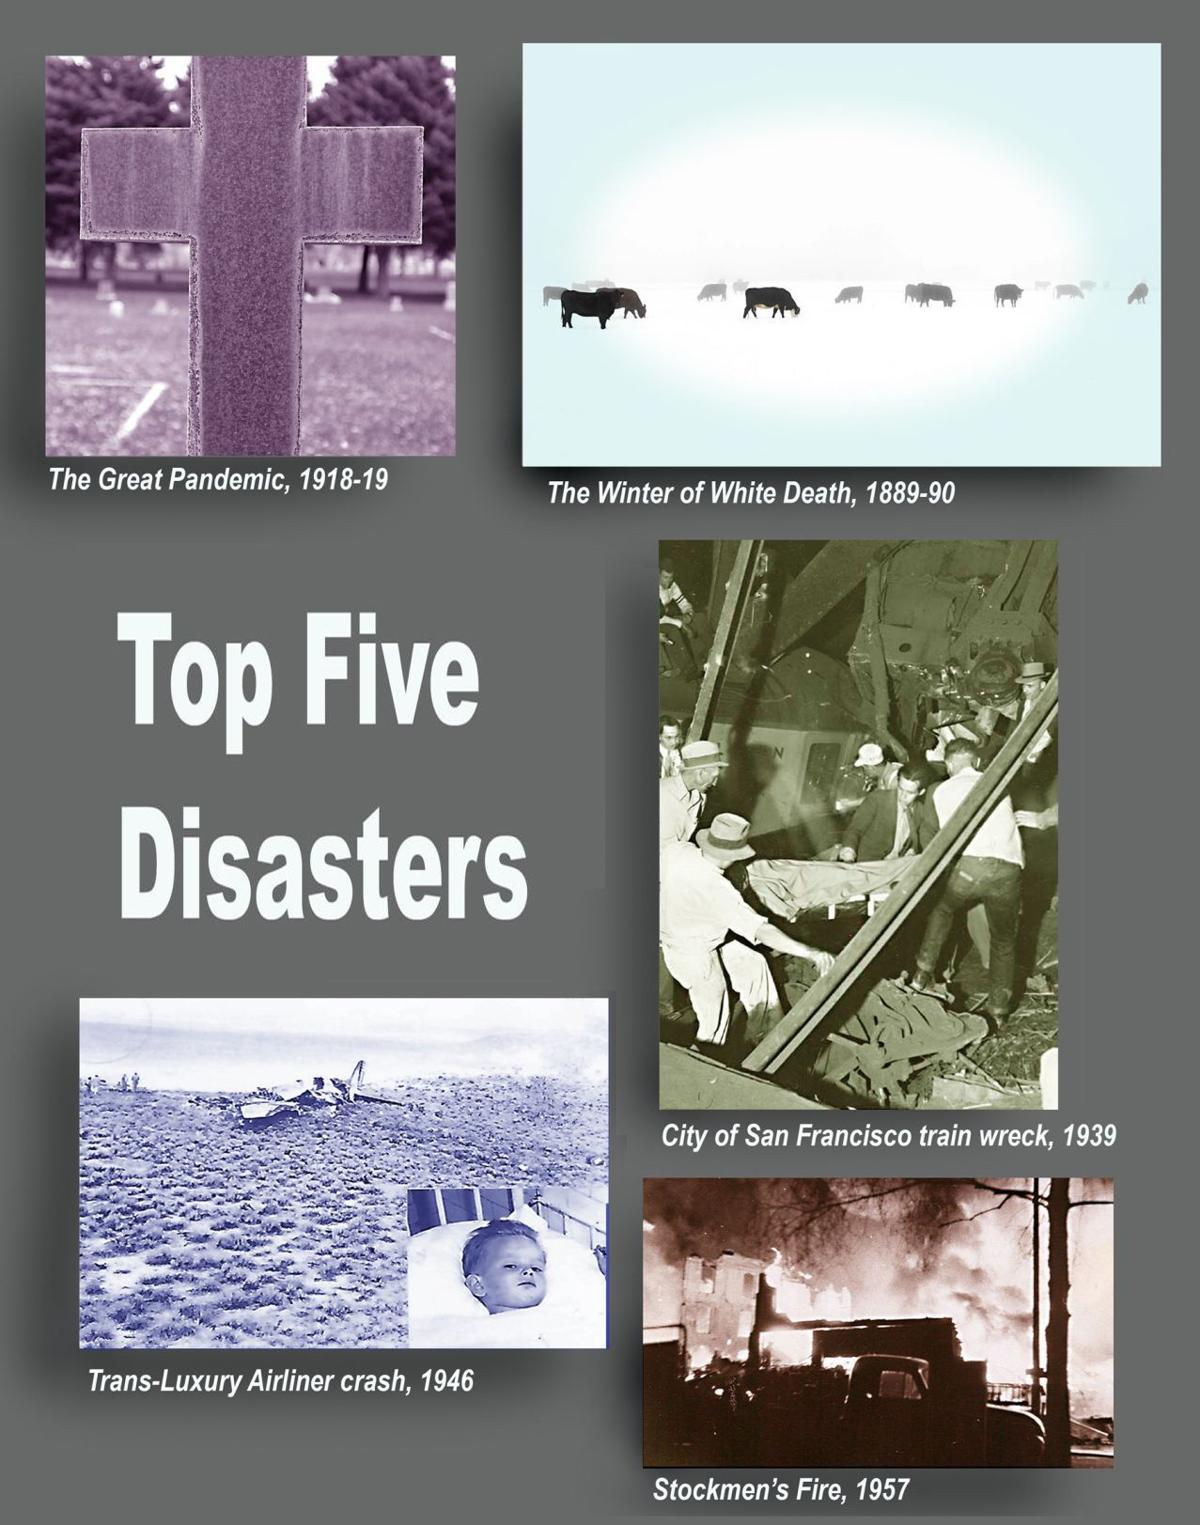 Top Five Disasters